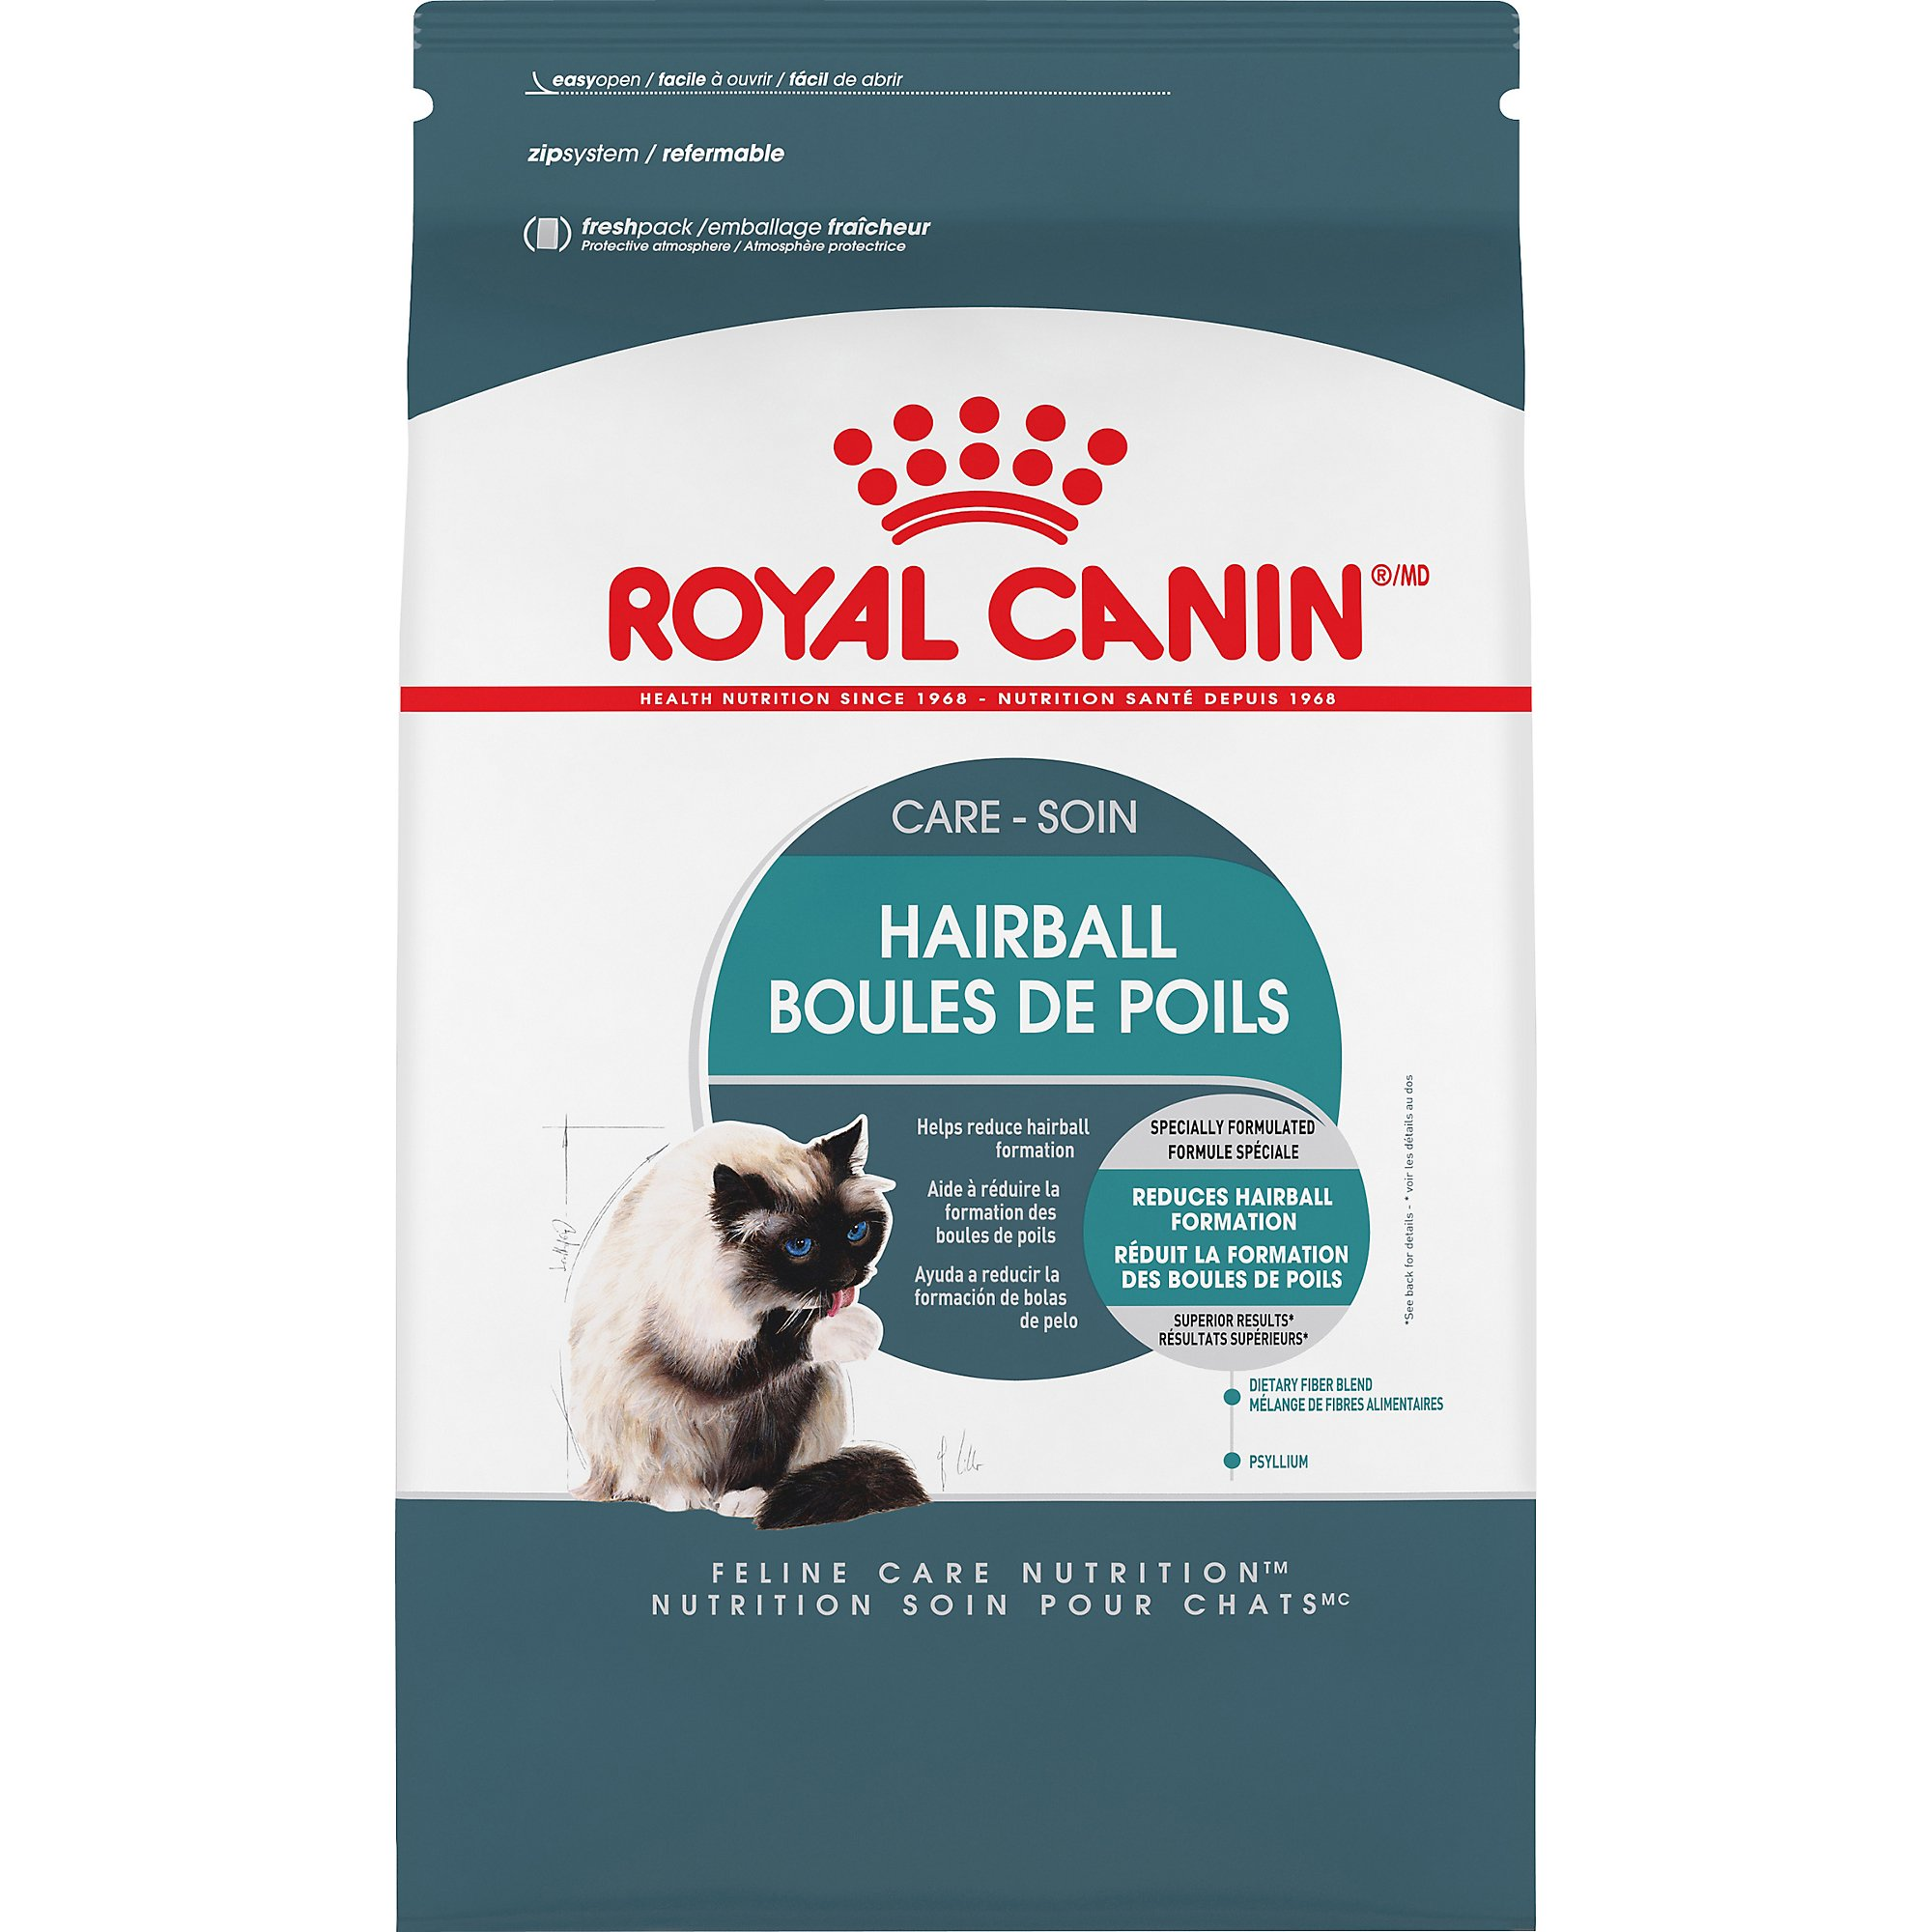 Royal Canin Feline Care Nutrition Hairball Care, 6 lb